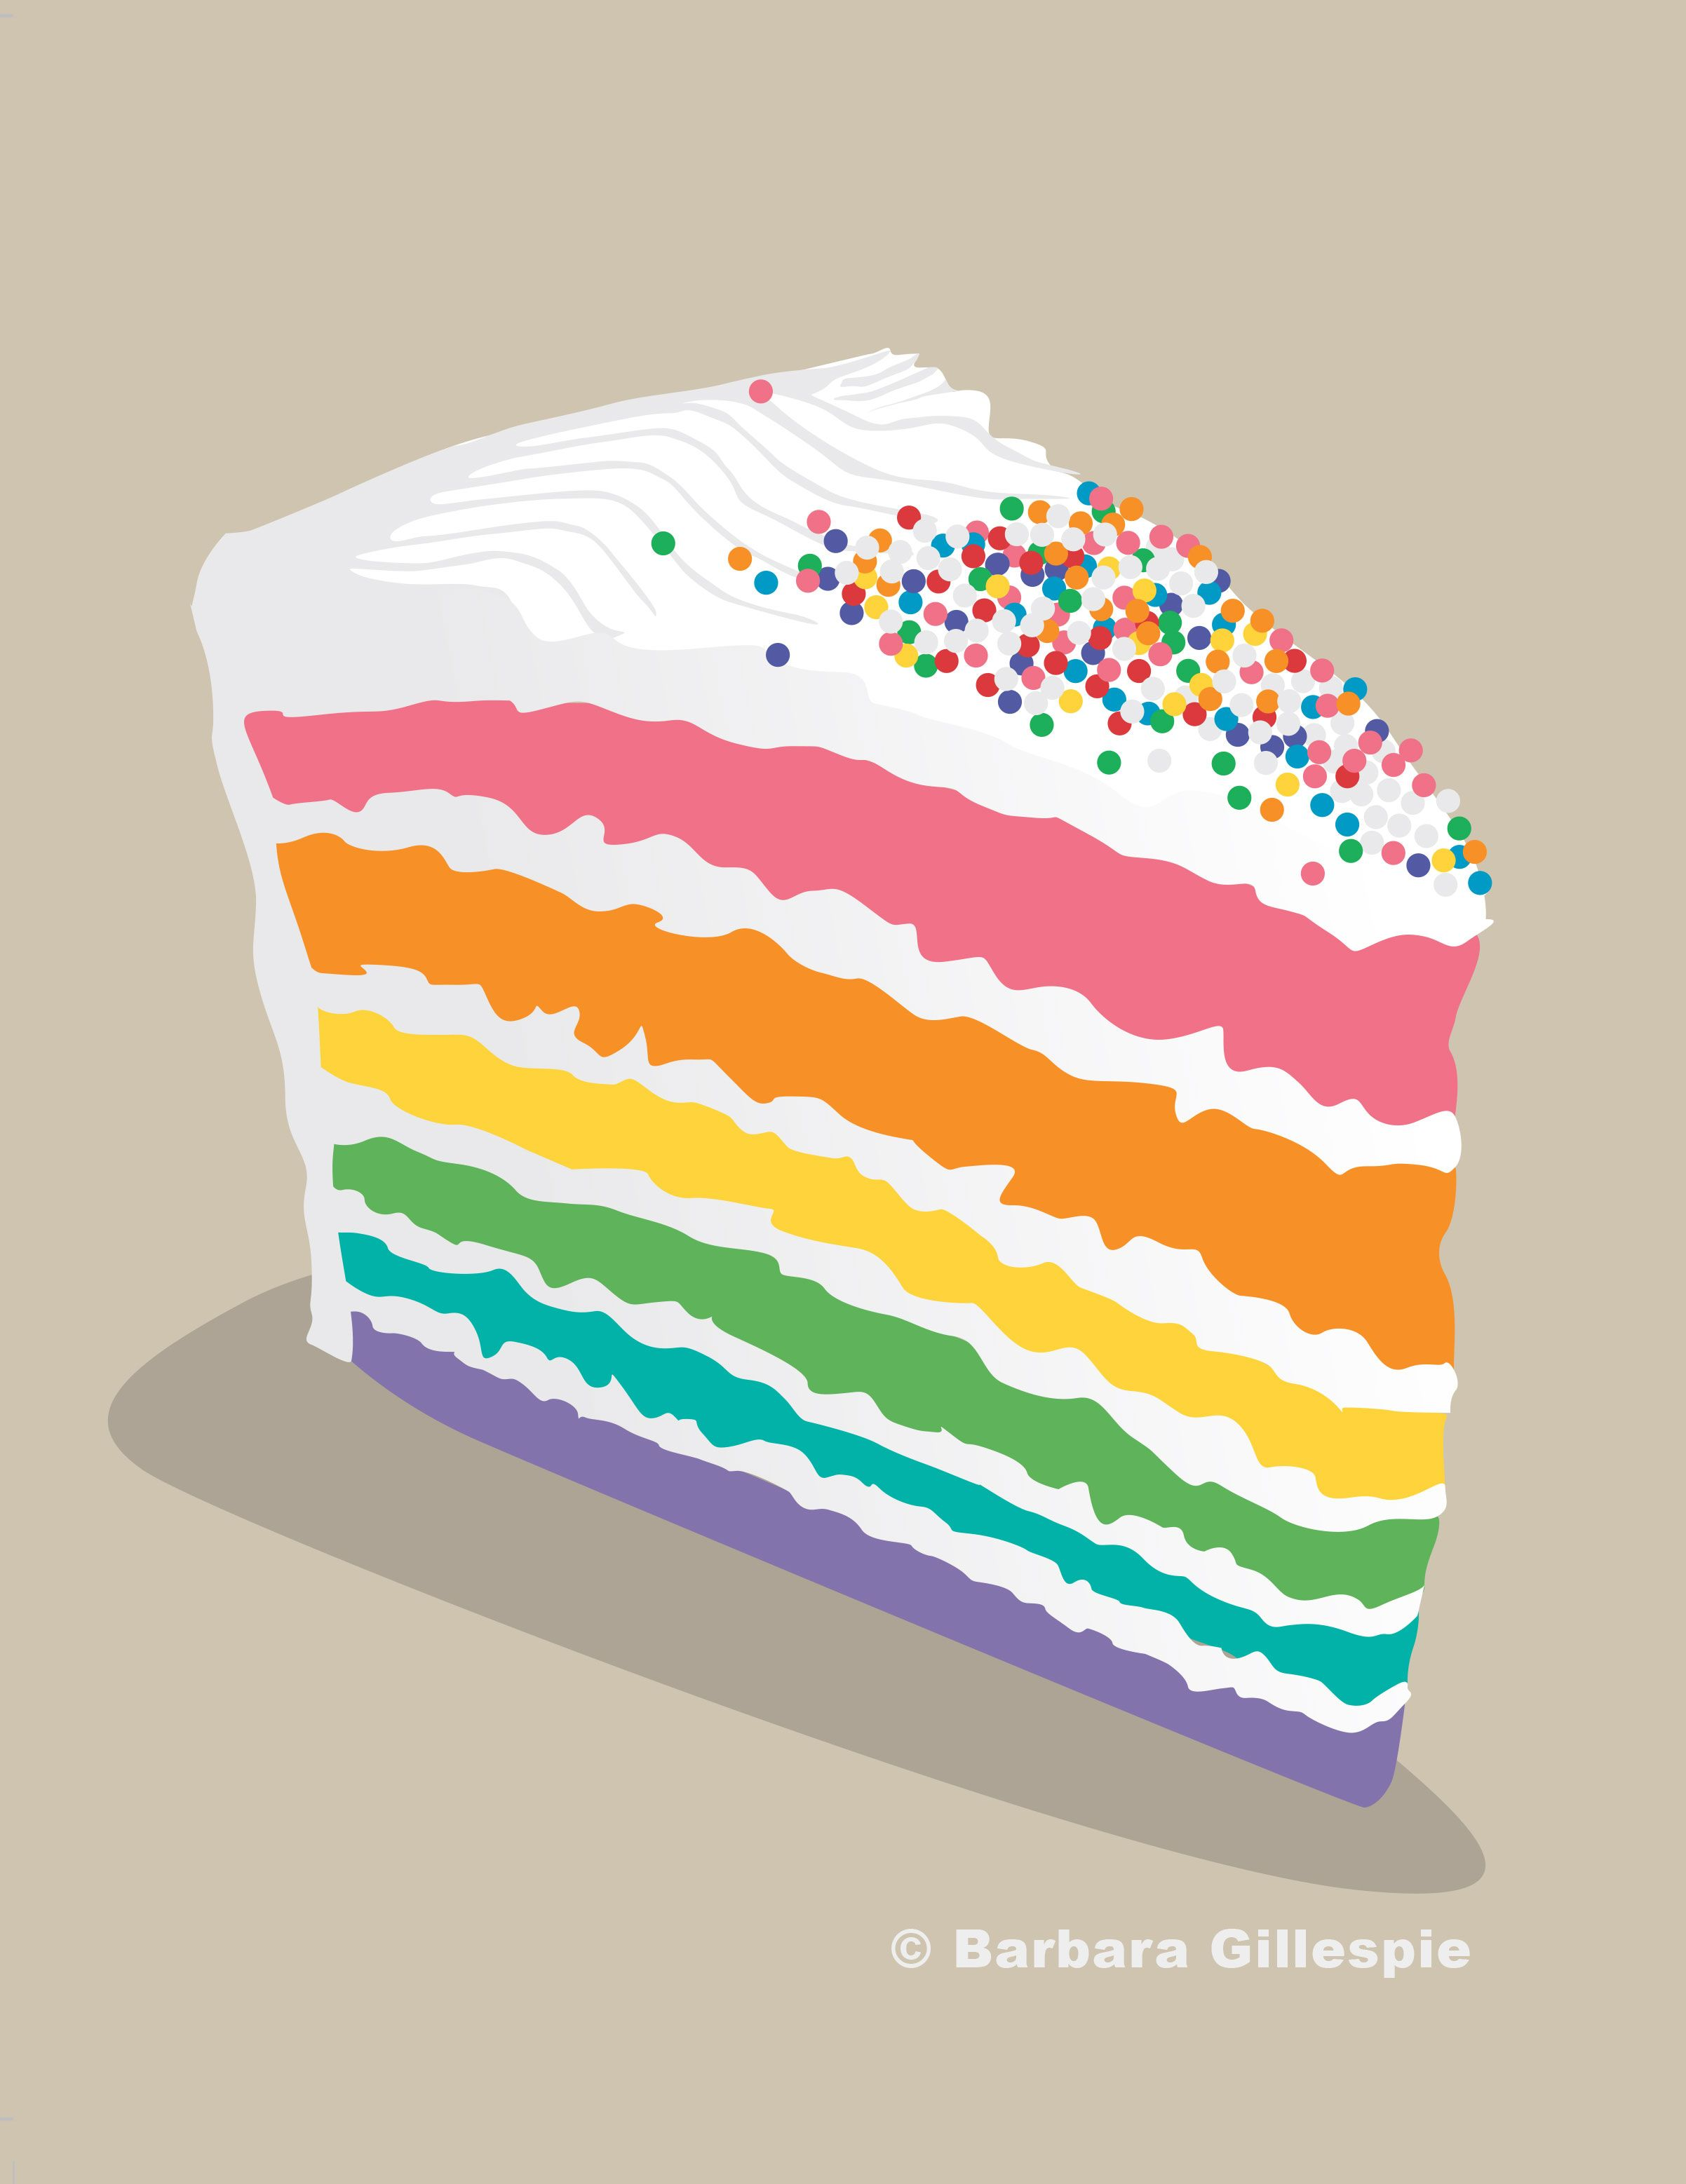 Rainbow Cake Print / Piece of Cake Print / Cake Art Print ... picture royalty free